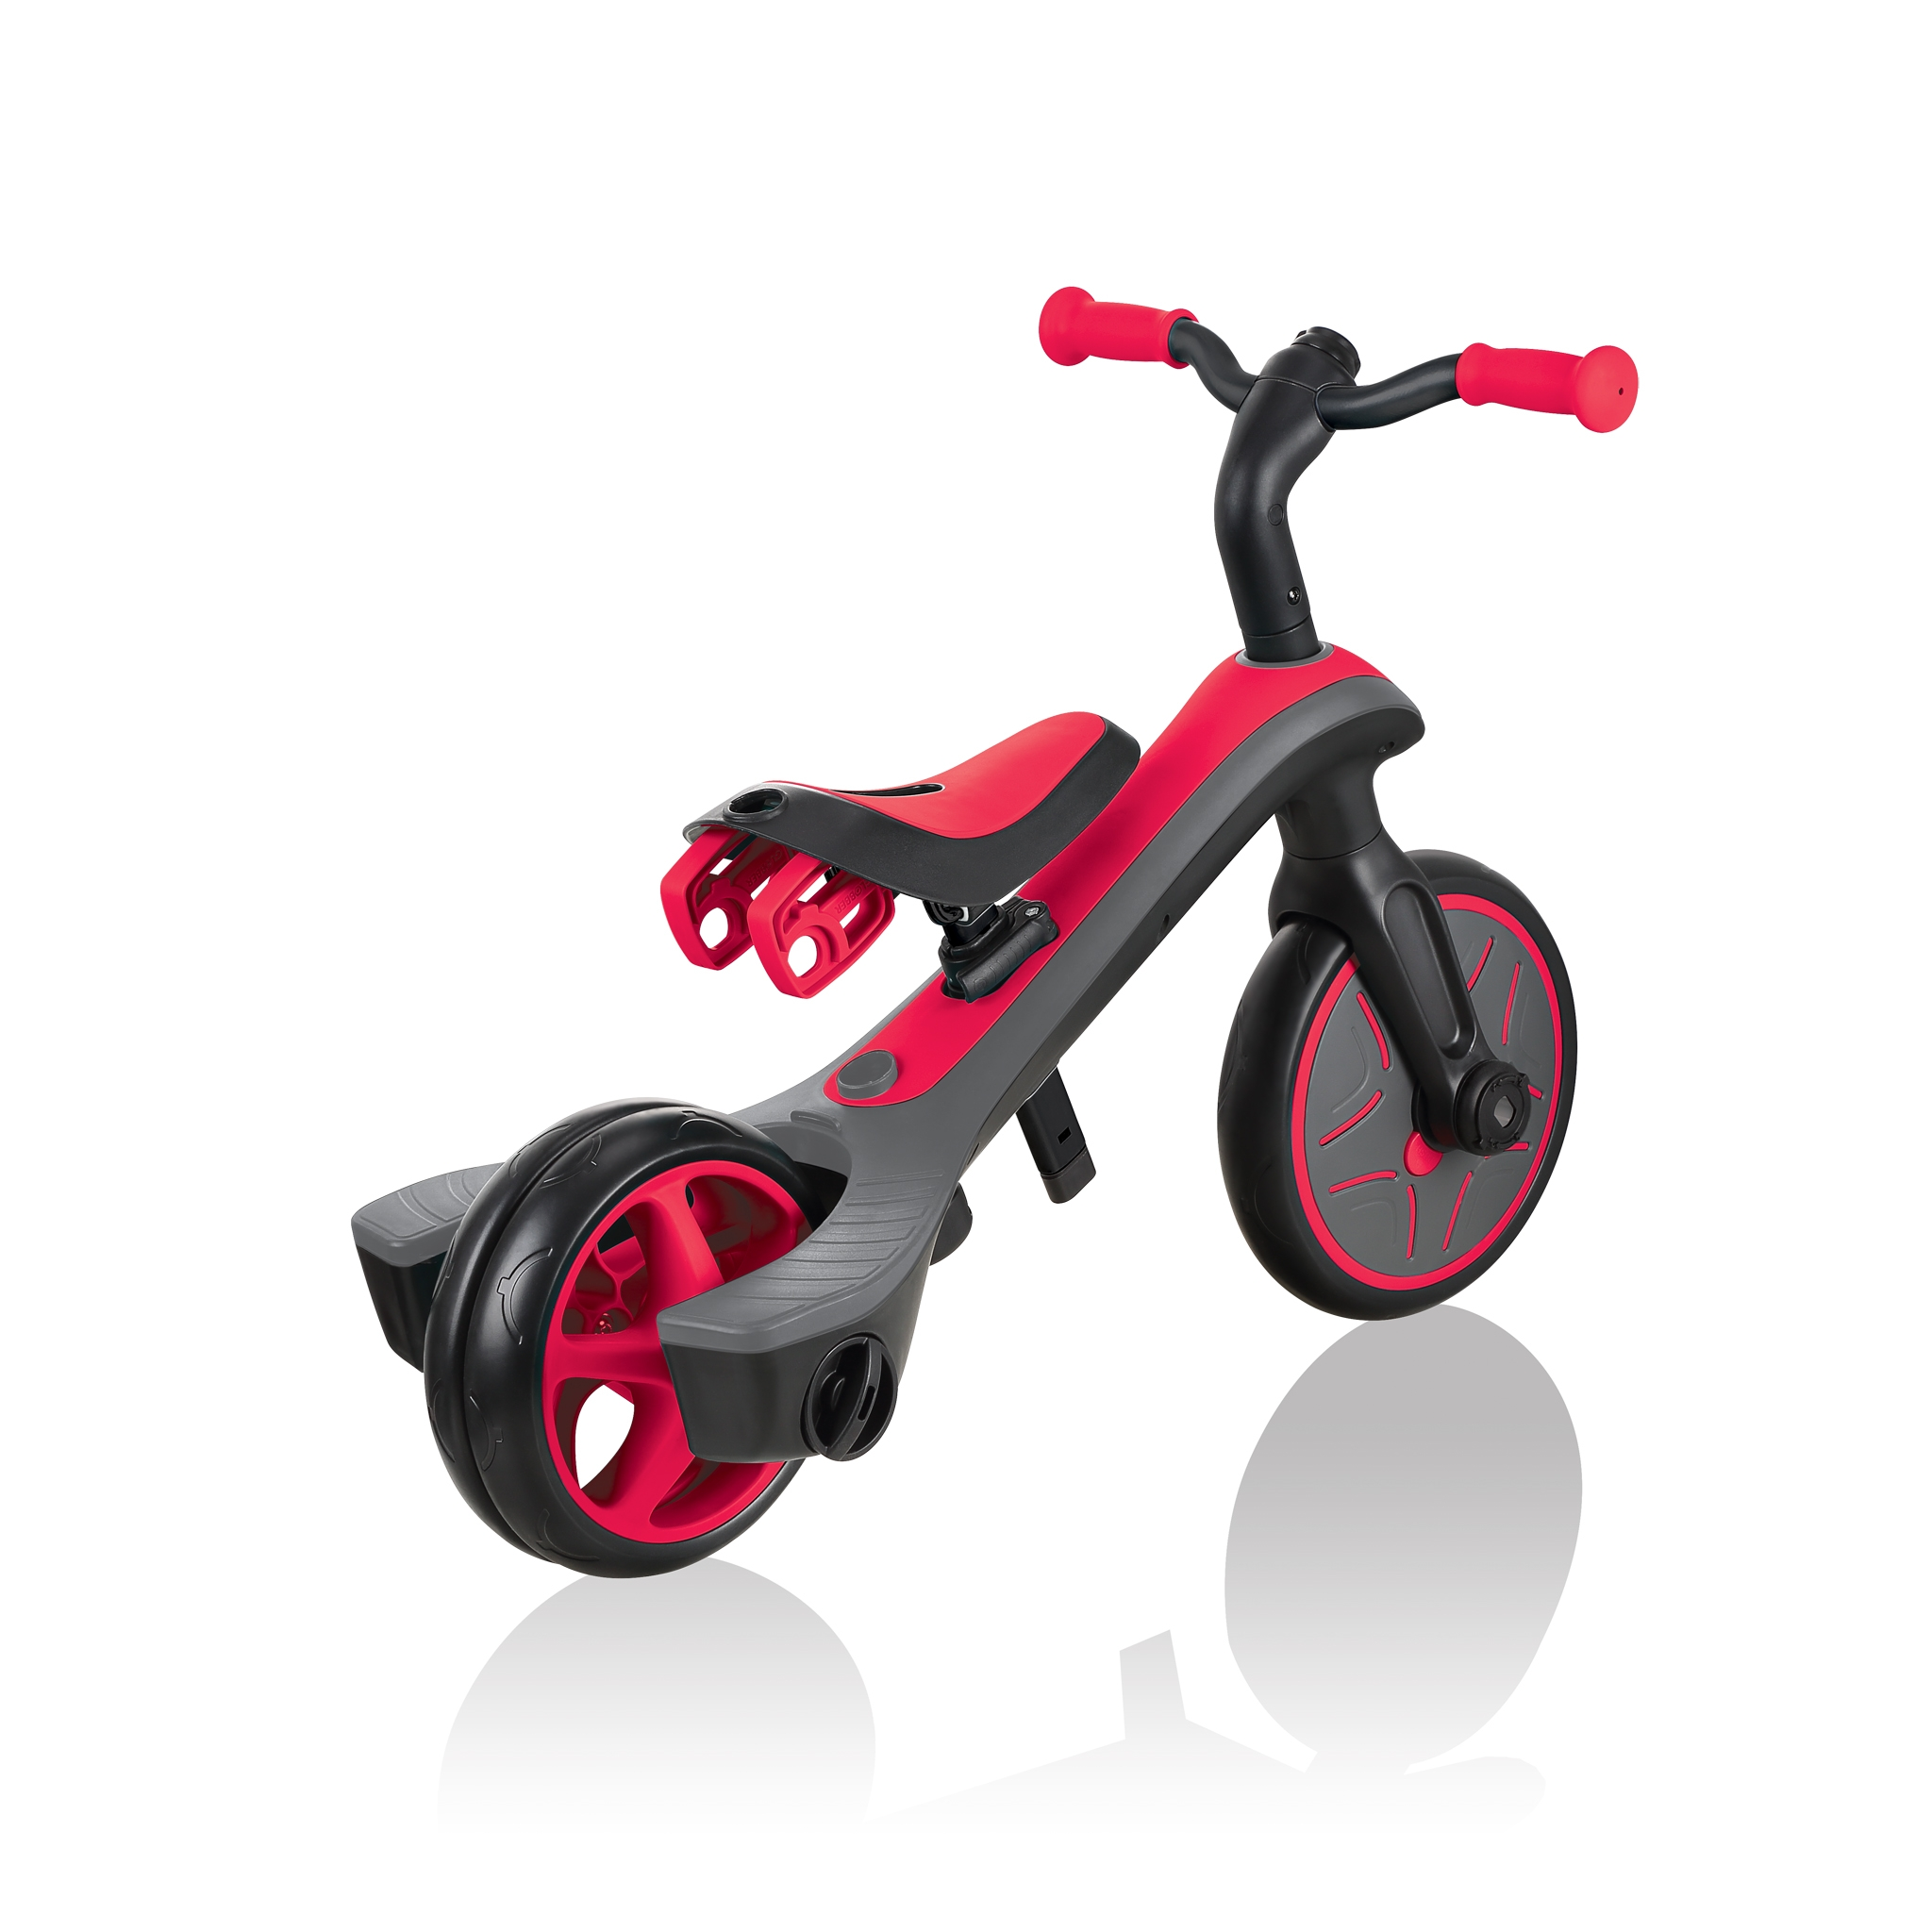 Globber-EXPLORER-TRIKE-2in1-all-in-one-training-tricycle-and-kids-balance-bike-with-smart-pedal-storage_new-red 4